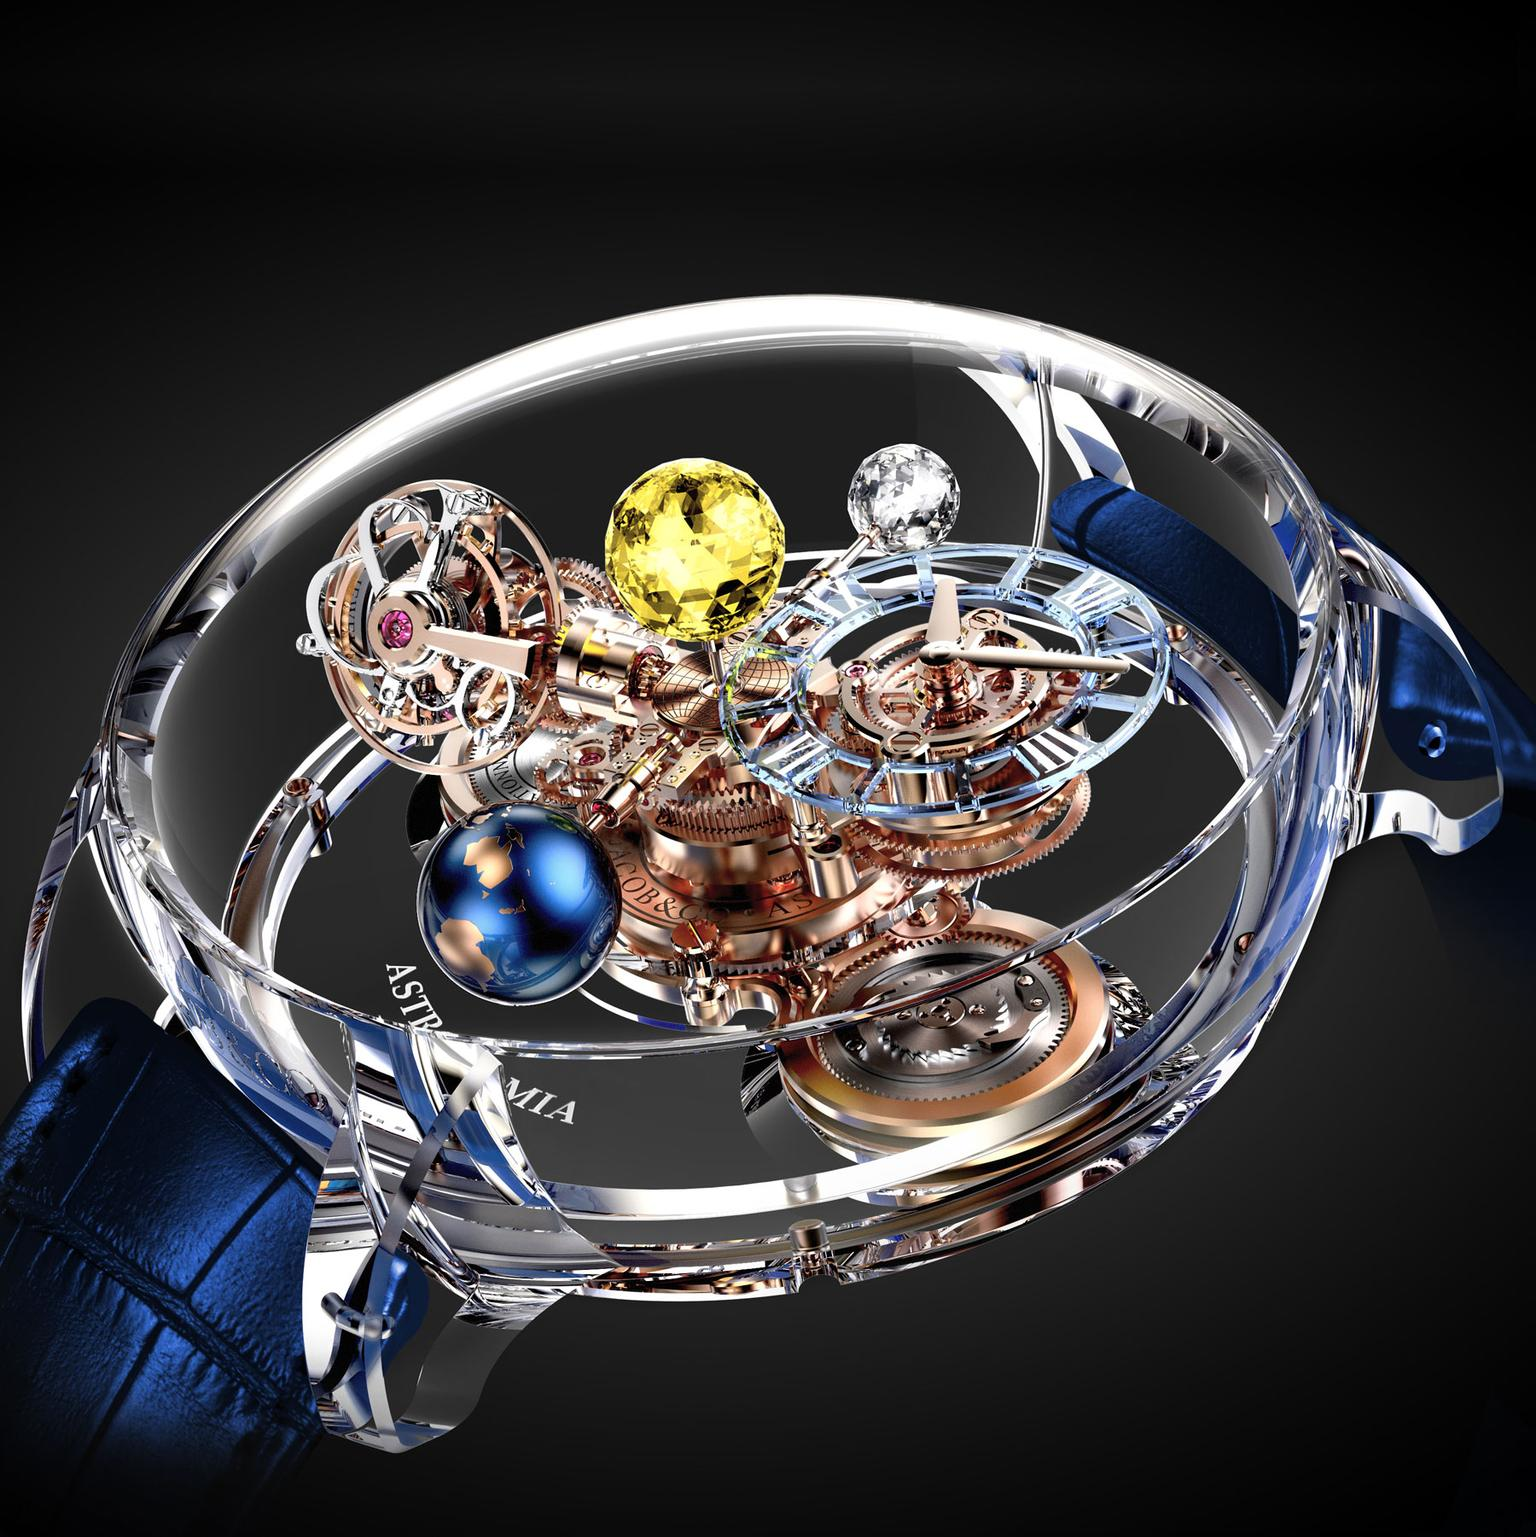 Jacob & Co Astronomia Flawless watch